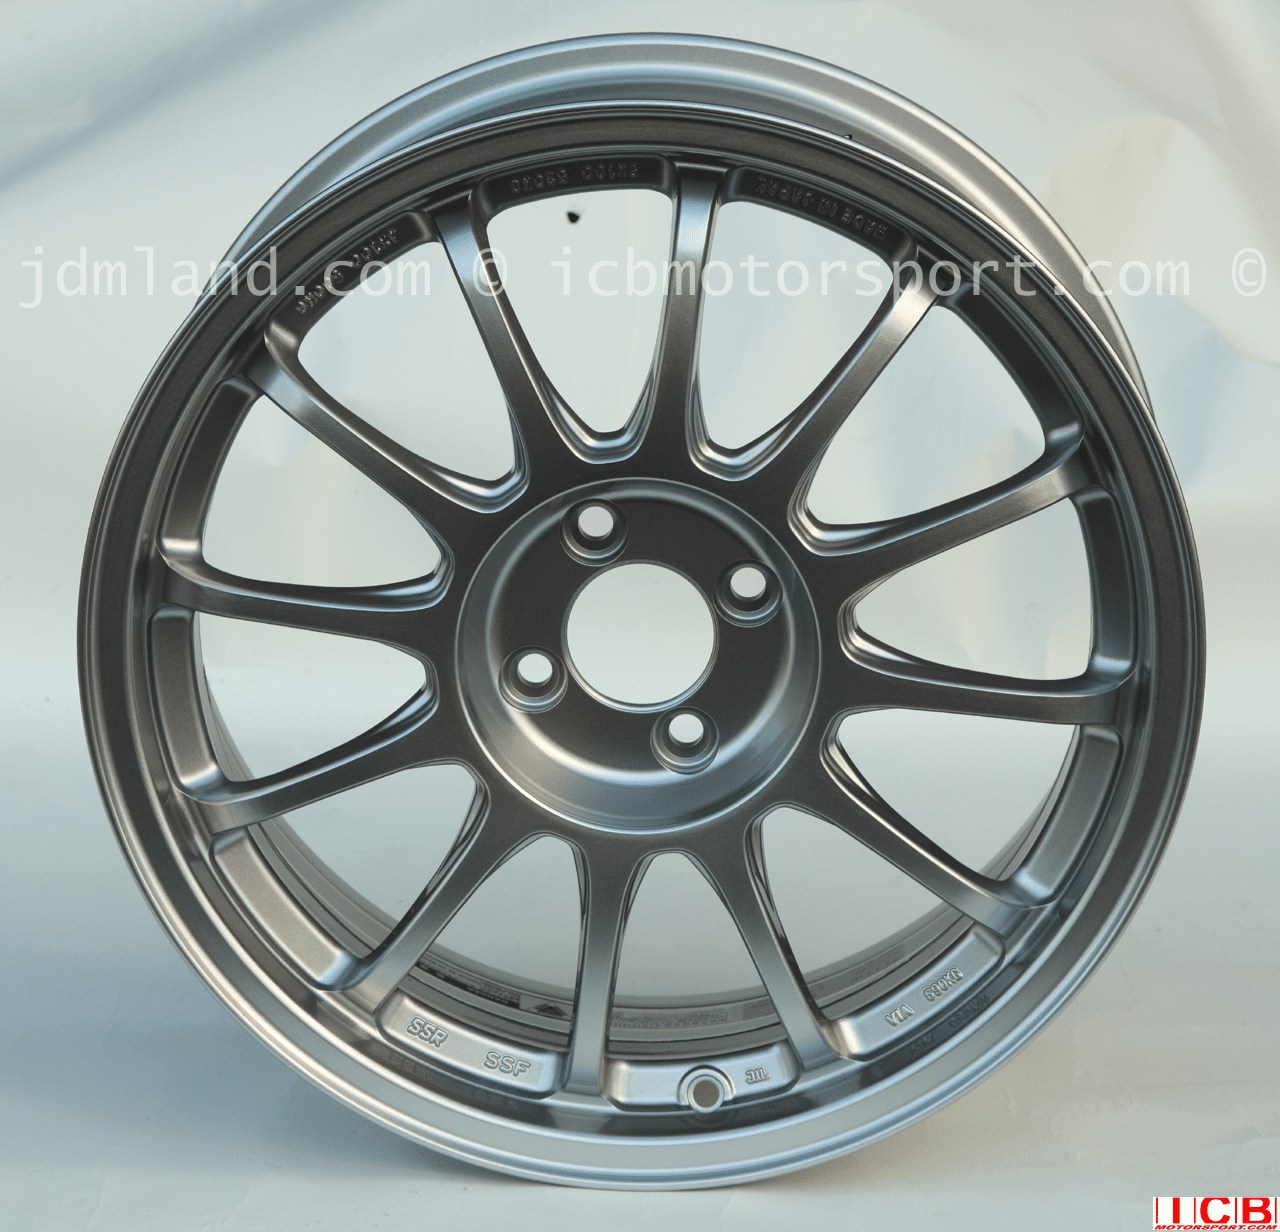 SSR Type F Competition Light Weight Wheels 17X7.5 4H-100 +42 Offset Bright Silver